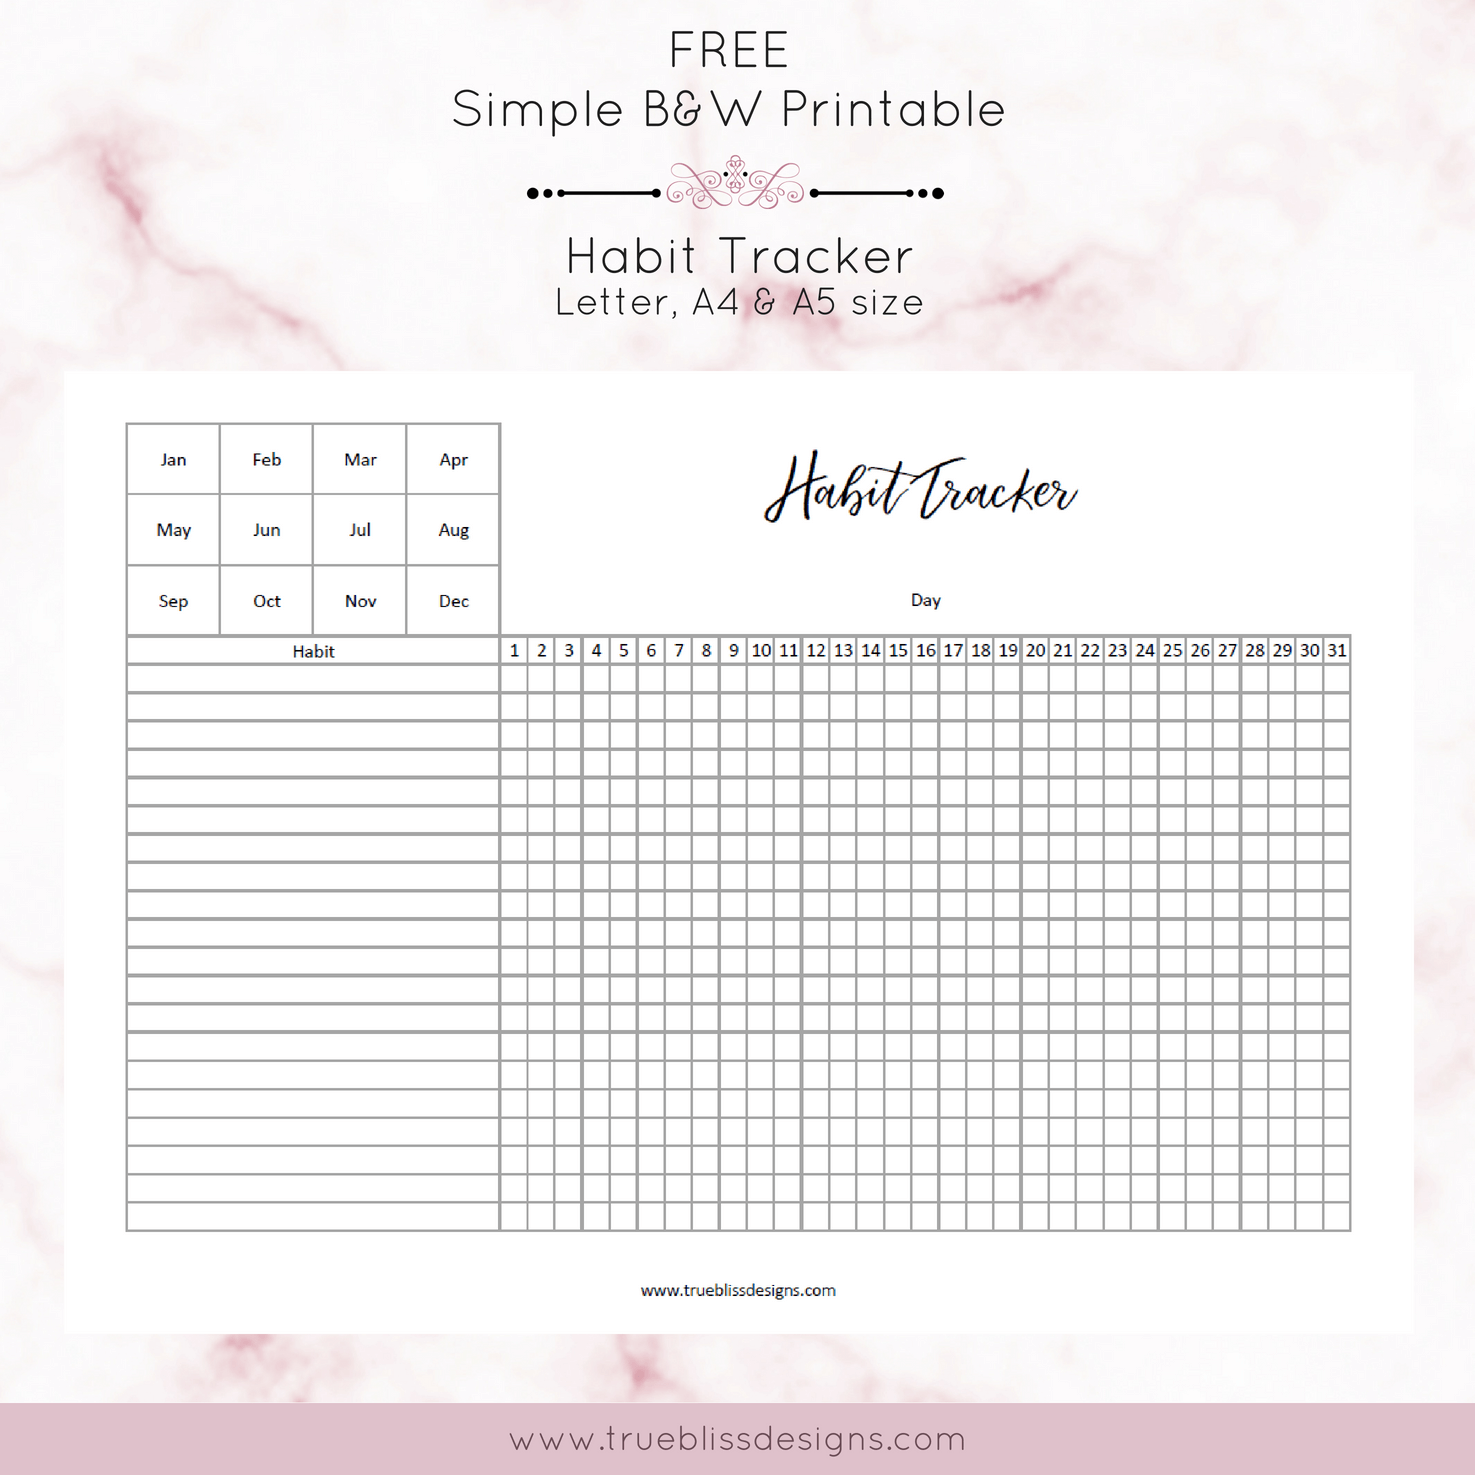 image about Free Habit Tracker Printable known as Pattern Tracker - Genuine Bliss Styles